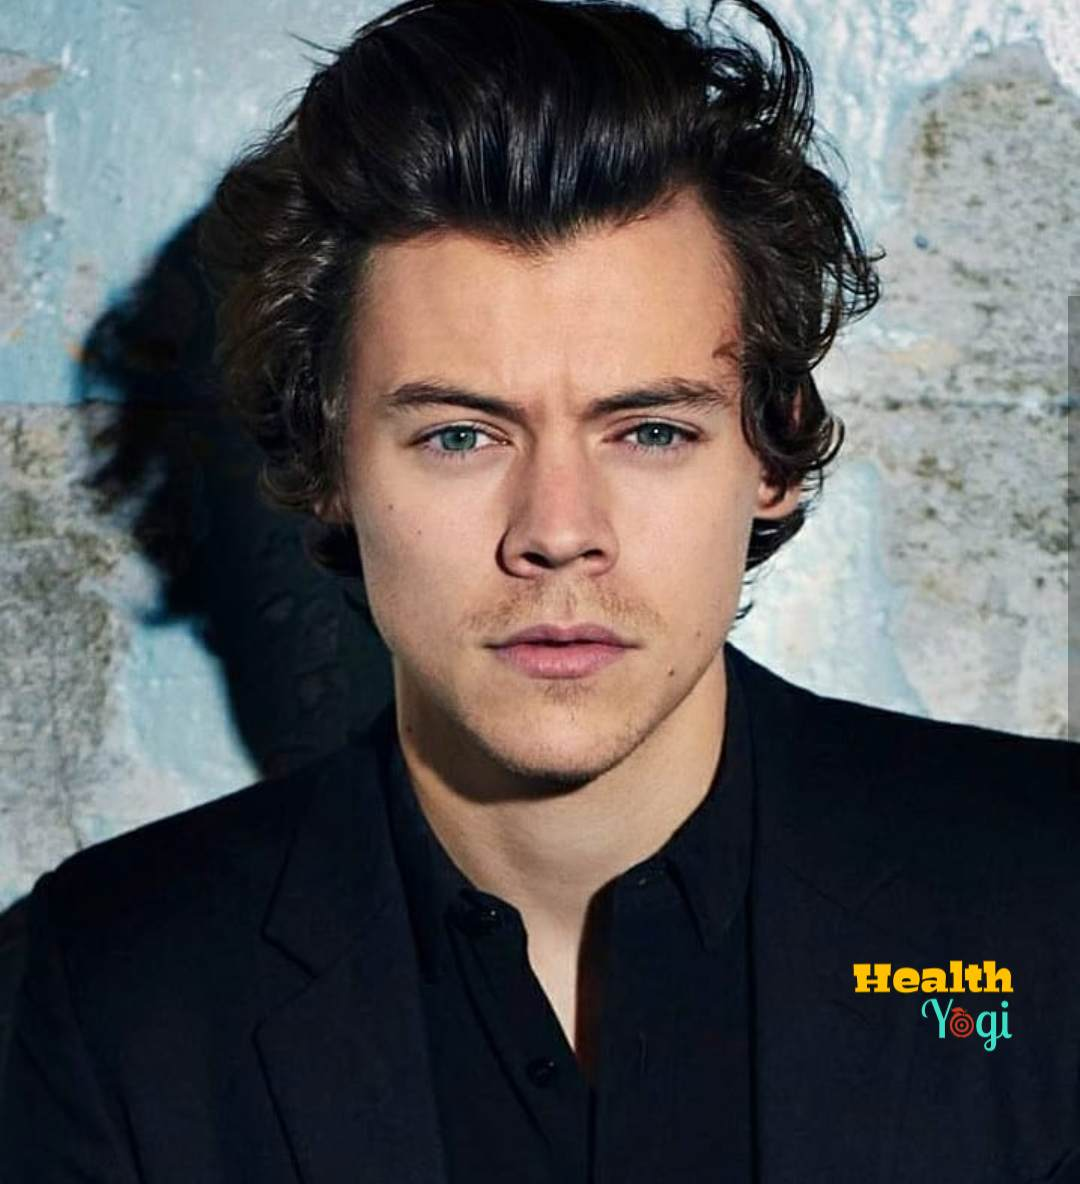 harry styles workout routine and diet plan 2020 health yogi harry styles workout routine and diet